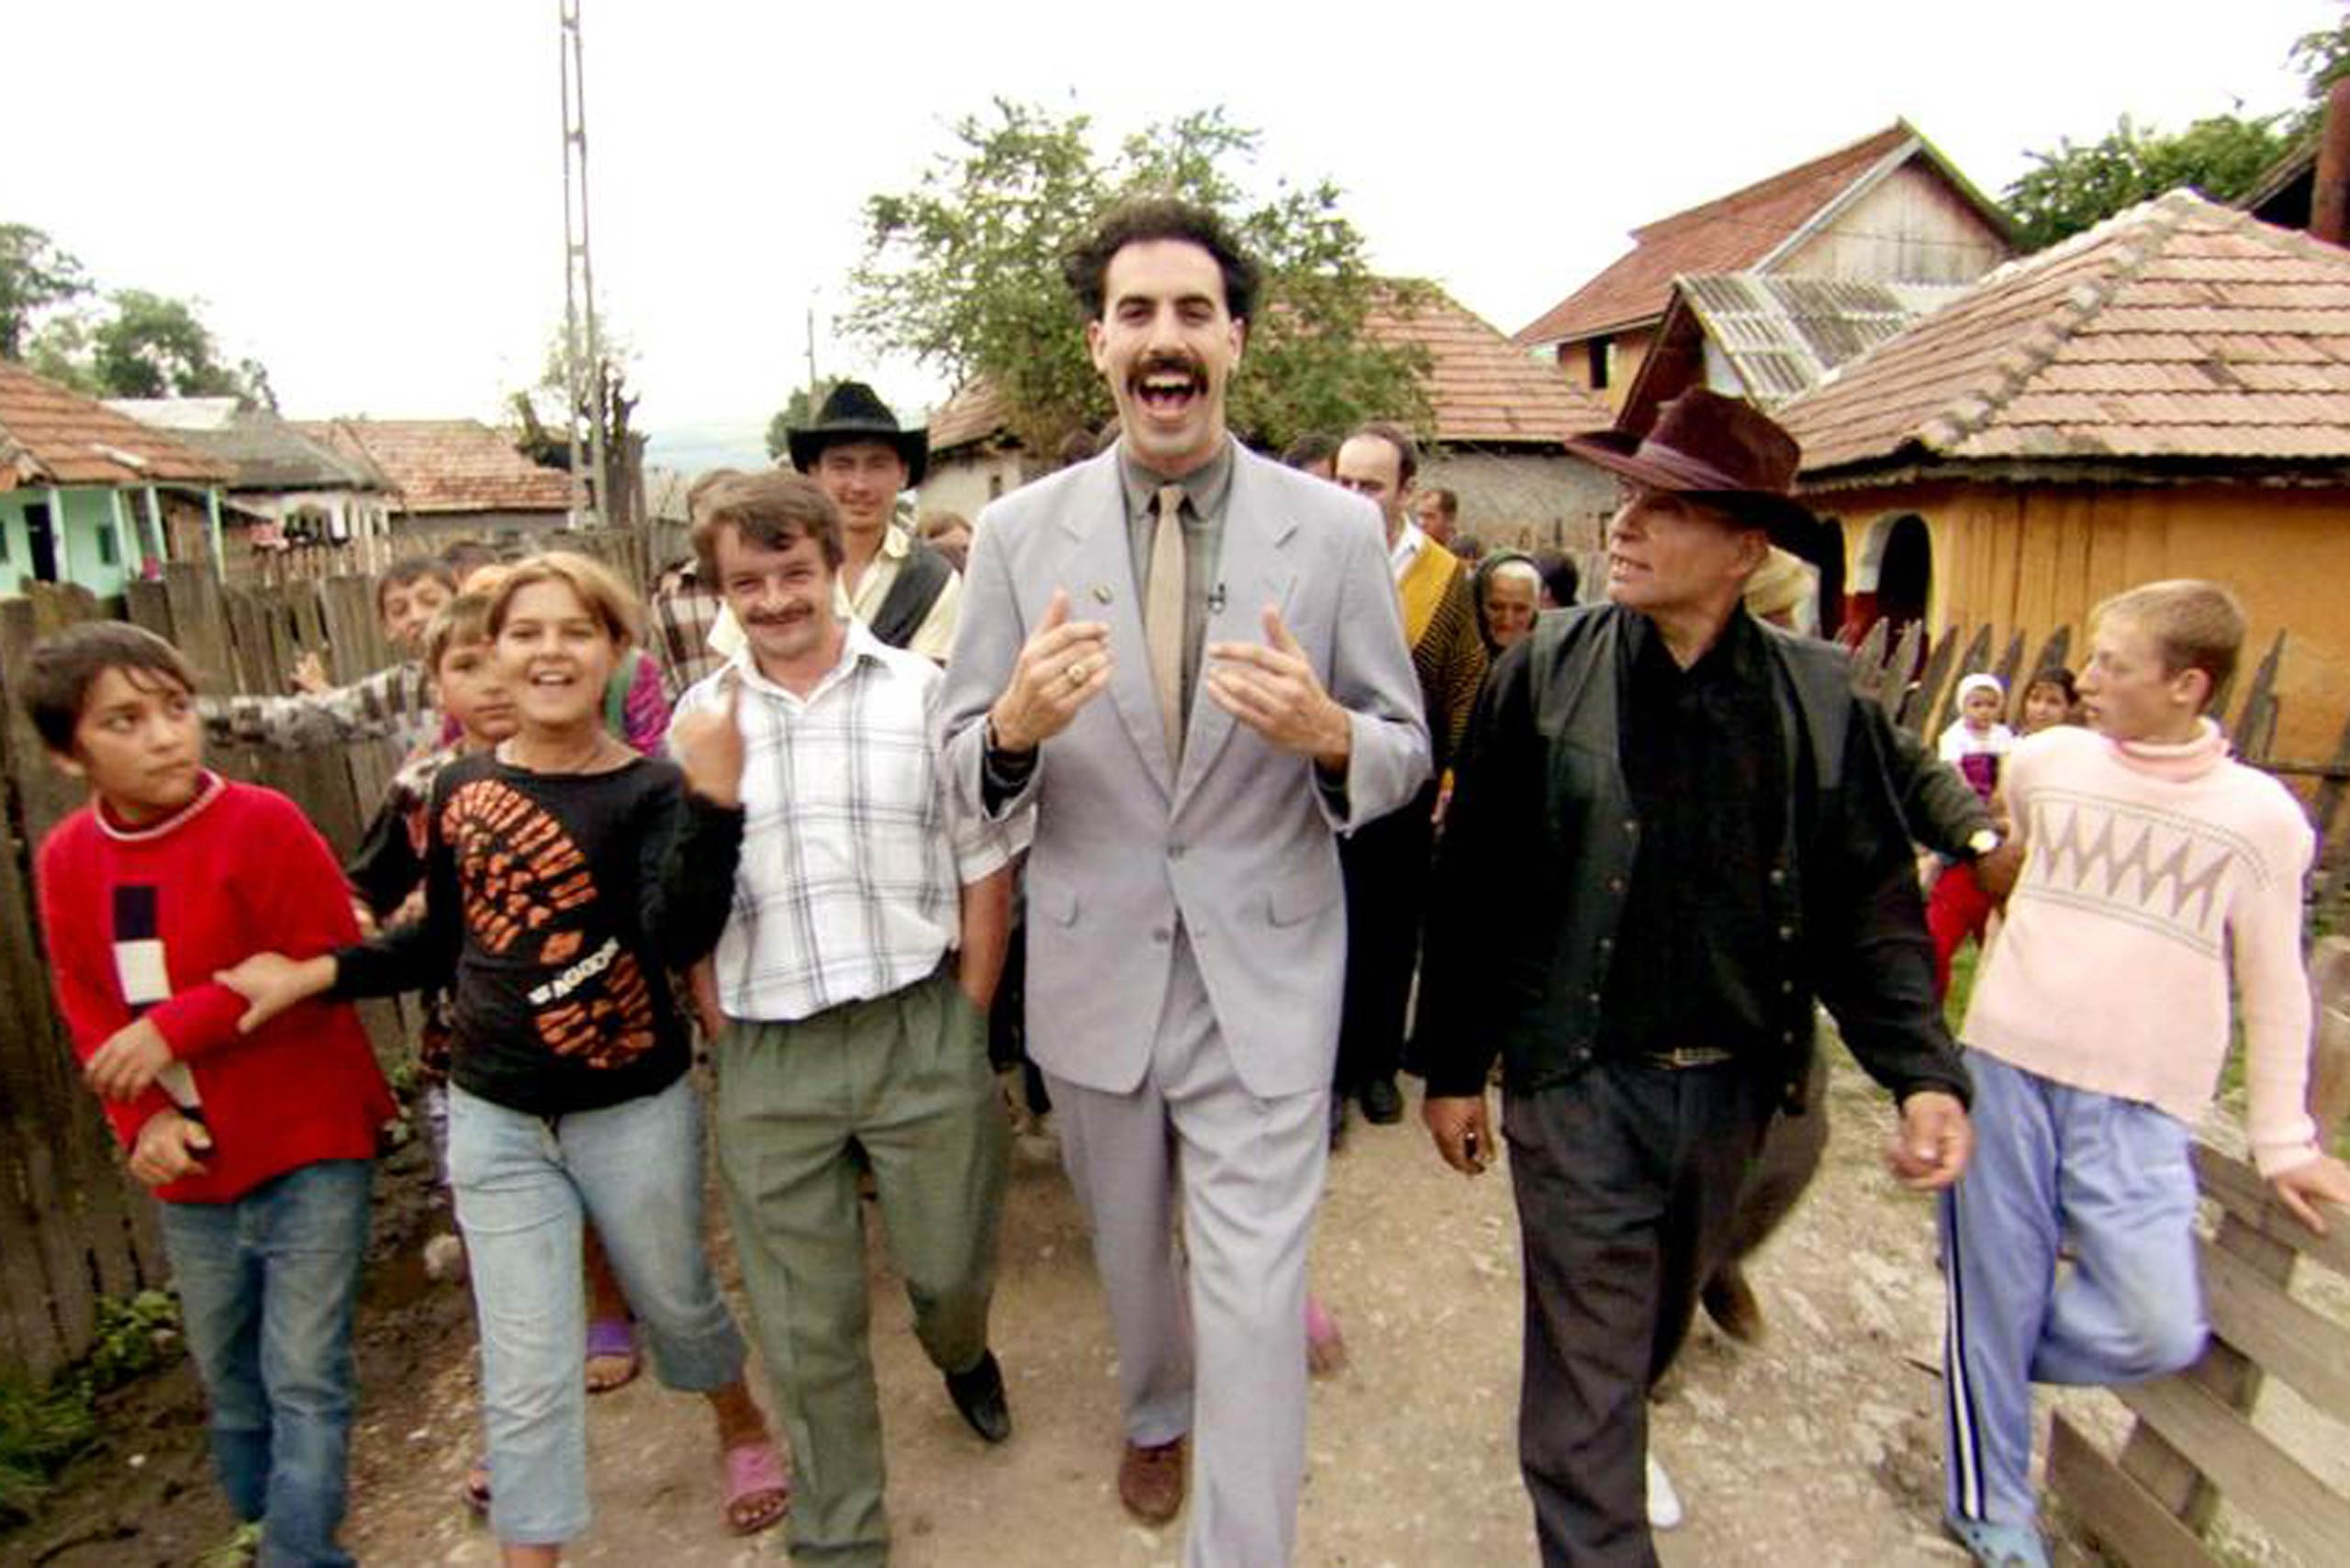 <strong><i>Borat</i>, 2006</strong> Sacha Baron Cohen's depiction of a Kazakh immigrant interacting with real people stateside showed America in a terrible light; it was hilarious, painful viewing. But for months after the film's release, questions over just how fair <i>Borat</i> had been to its participants persisted. And Baron Cohen's career continued to push boundaries of taste, with subsequent movies lampooning gay men (<i>Bruno</i>) and Sub-Saharan African heads of state (<i>The Dictator</i>).